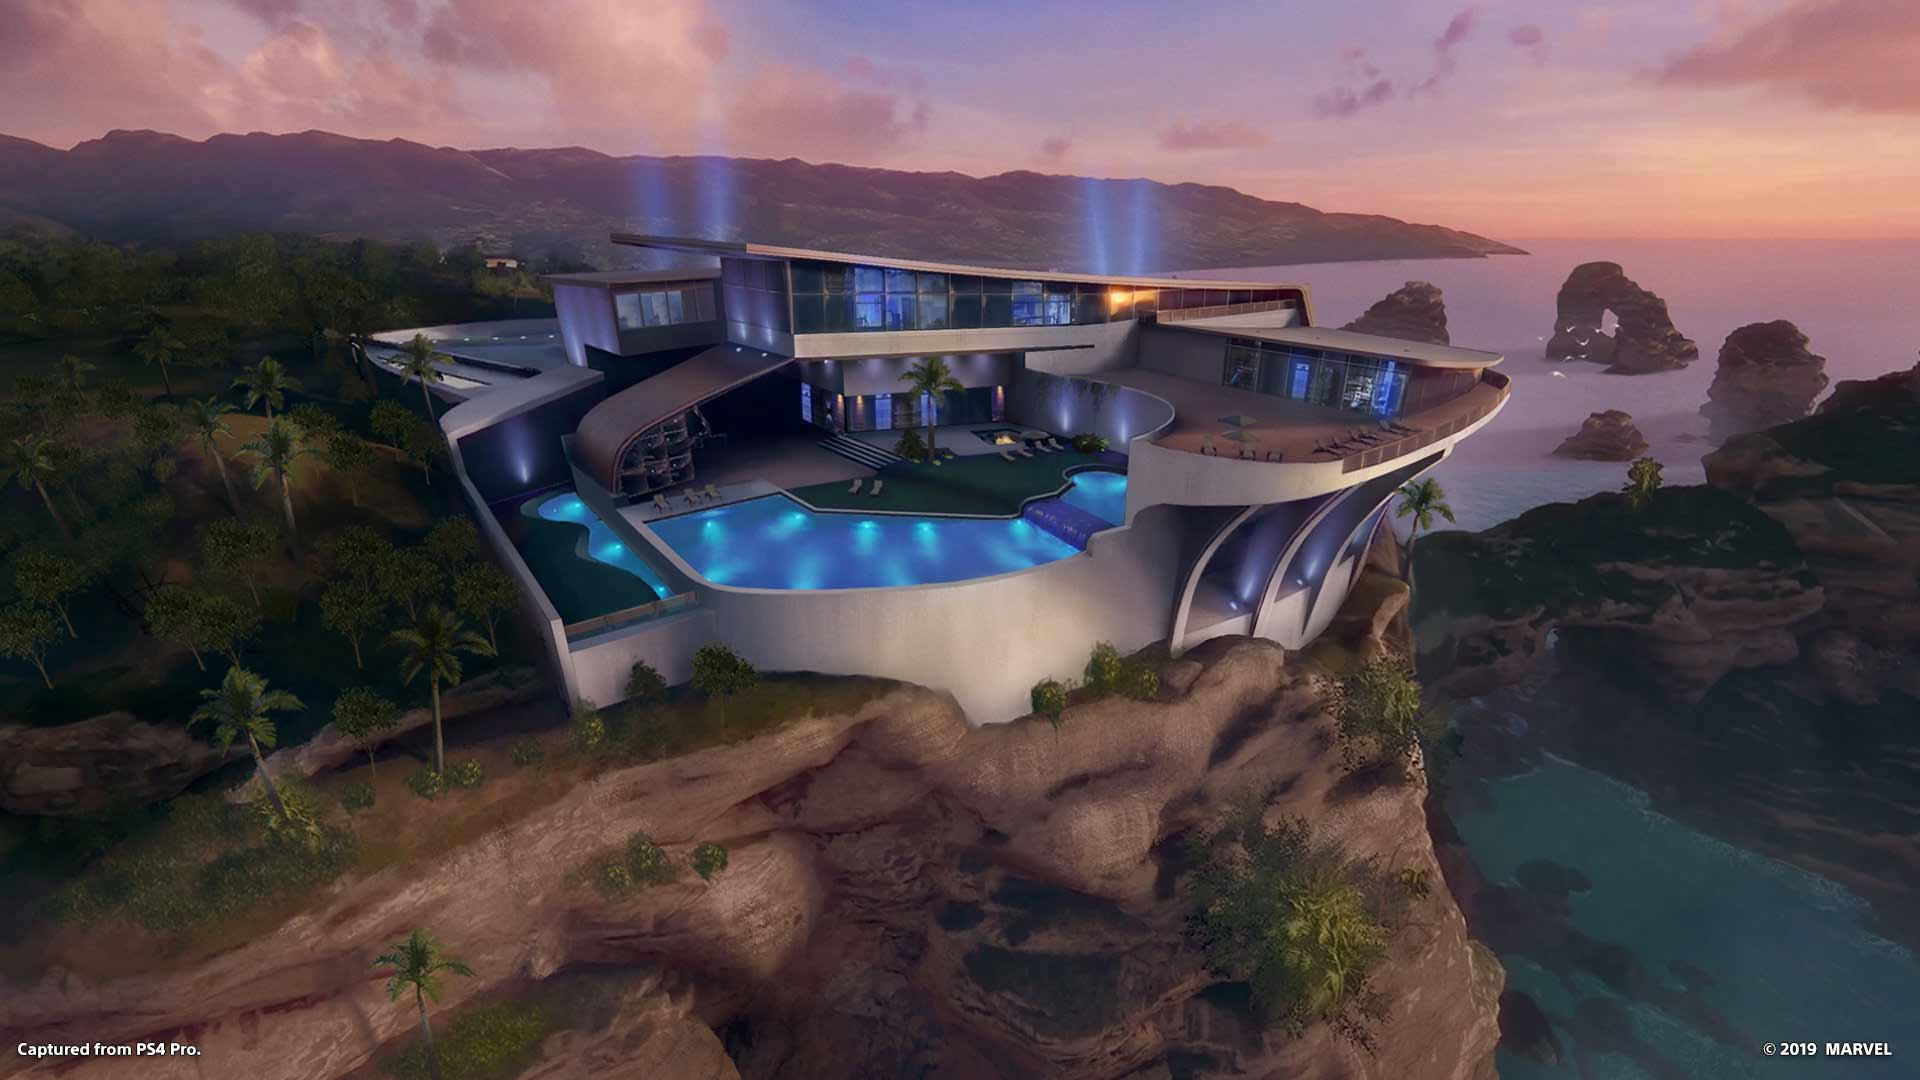 Iron Man VR Malibu house